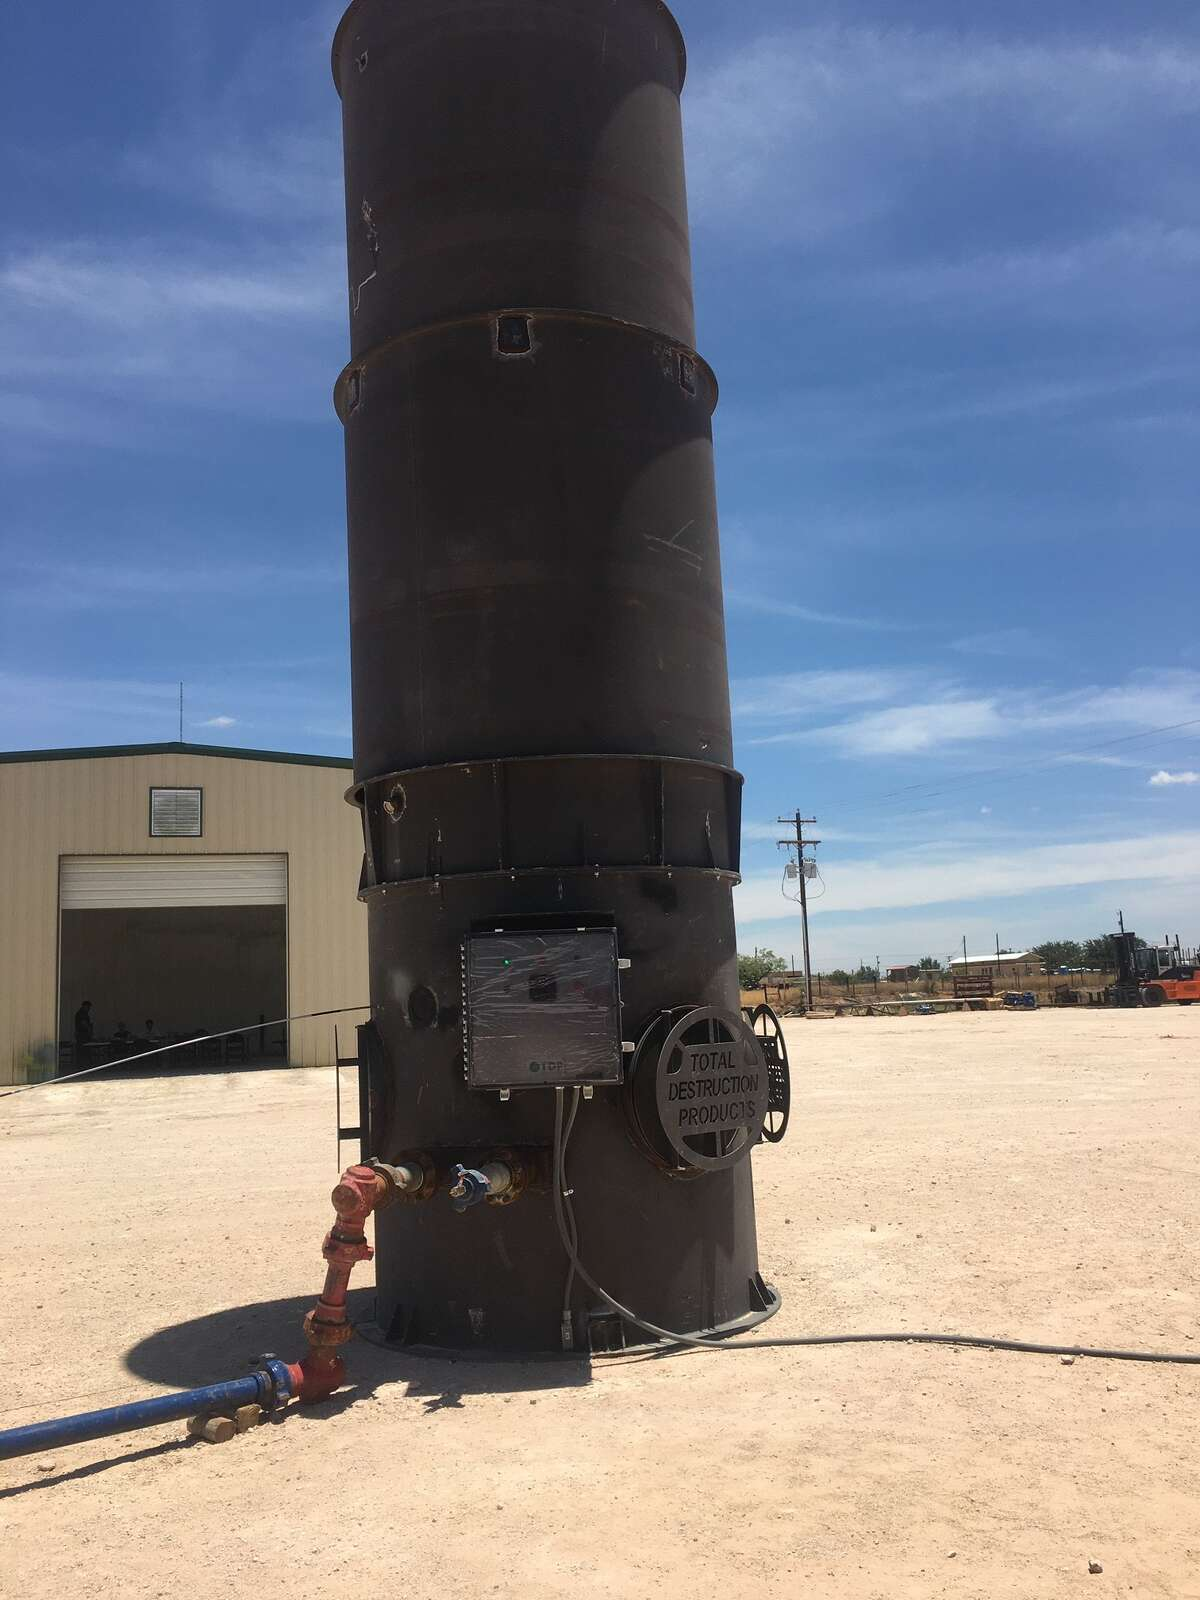 As a result of the downturn, consolidation in the oilfield services sector is expected to result in fewer, more efficient companies as the industry recovers its economic footing. Some companies, such as Texas J&A Service, are taking advantage of the lull to develop new products, like J&A's low pressure flare and the SandCat, which captures VOCs during drill out.